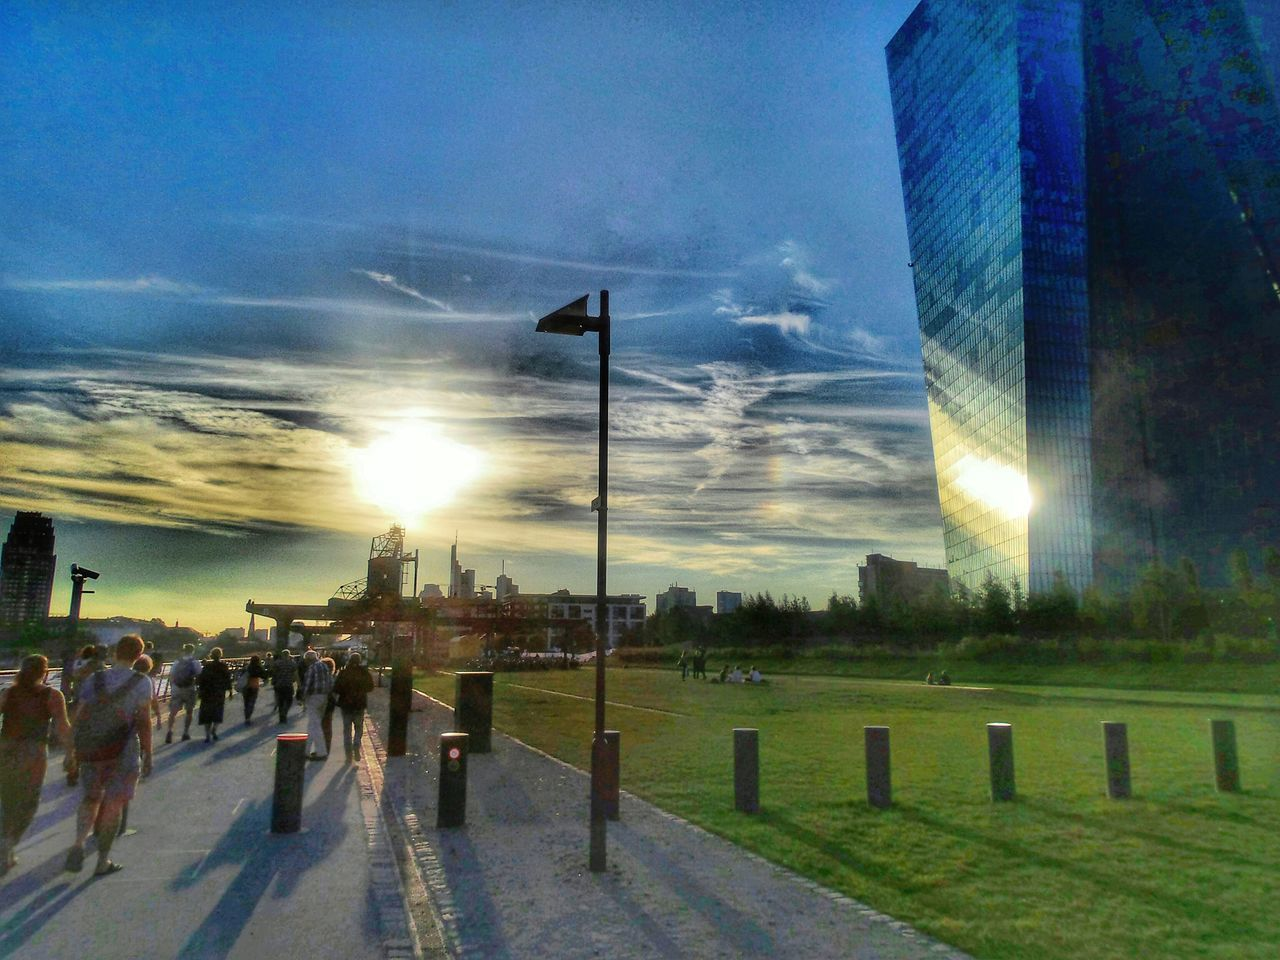 Walking Into The Light Large Group Of People Walking Along The Riverbank ☺ of the Main River in Frankfurt Am Main Germany🇩🇪 EZB Building At The Horizon Sunset Sunset Silhouettes Sky Sky And Clouds Skyline Frankfurt Skyscrapers Evening Light Evening Walk Outdoors Nature people walking to an Open Air Classical Concert EyeEm Diversity Art Is Everywhere The Photojournalist - 2017 EyeEm Awards Visual Feast The Architect - 2017 EyeEm Awards The Street Photographer - 2017 EyeEm Awards